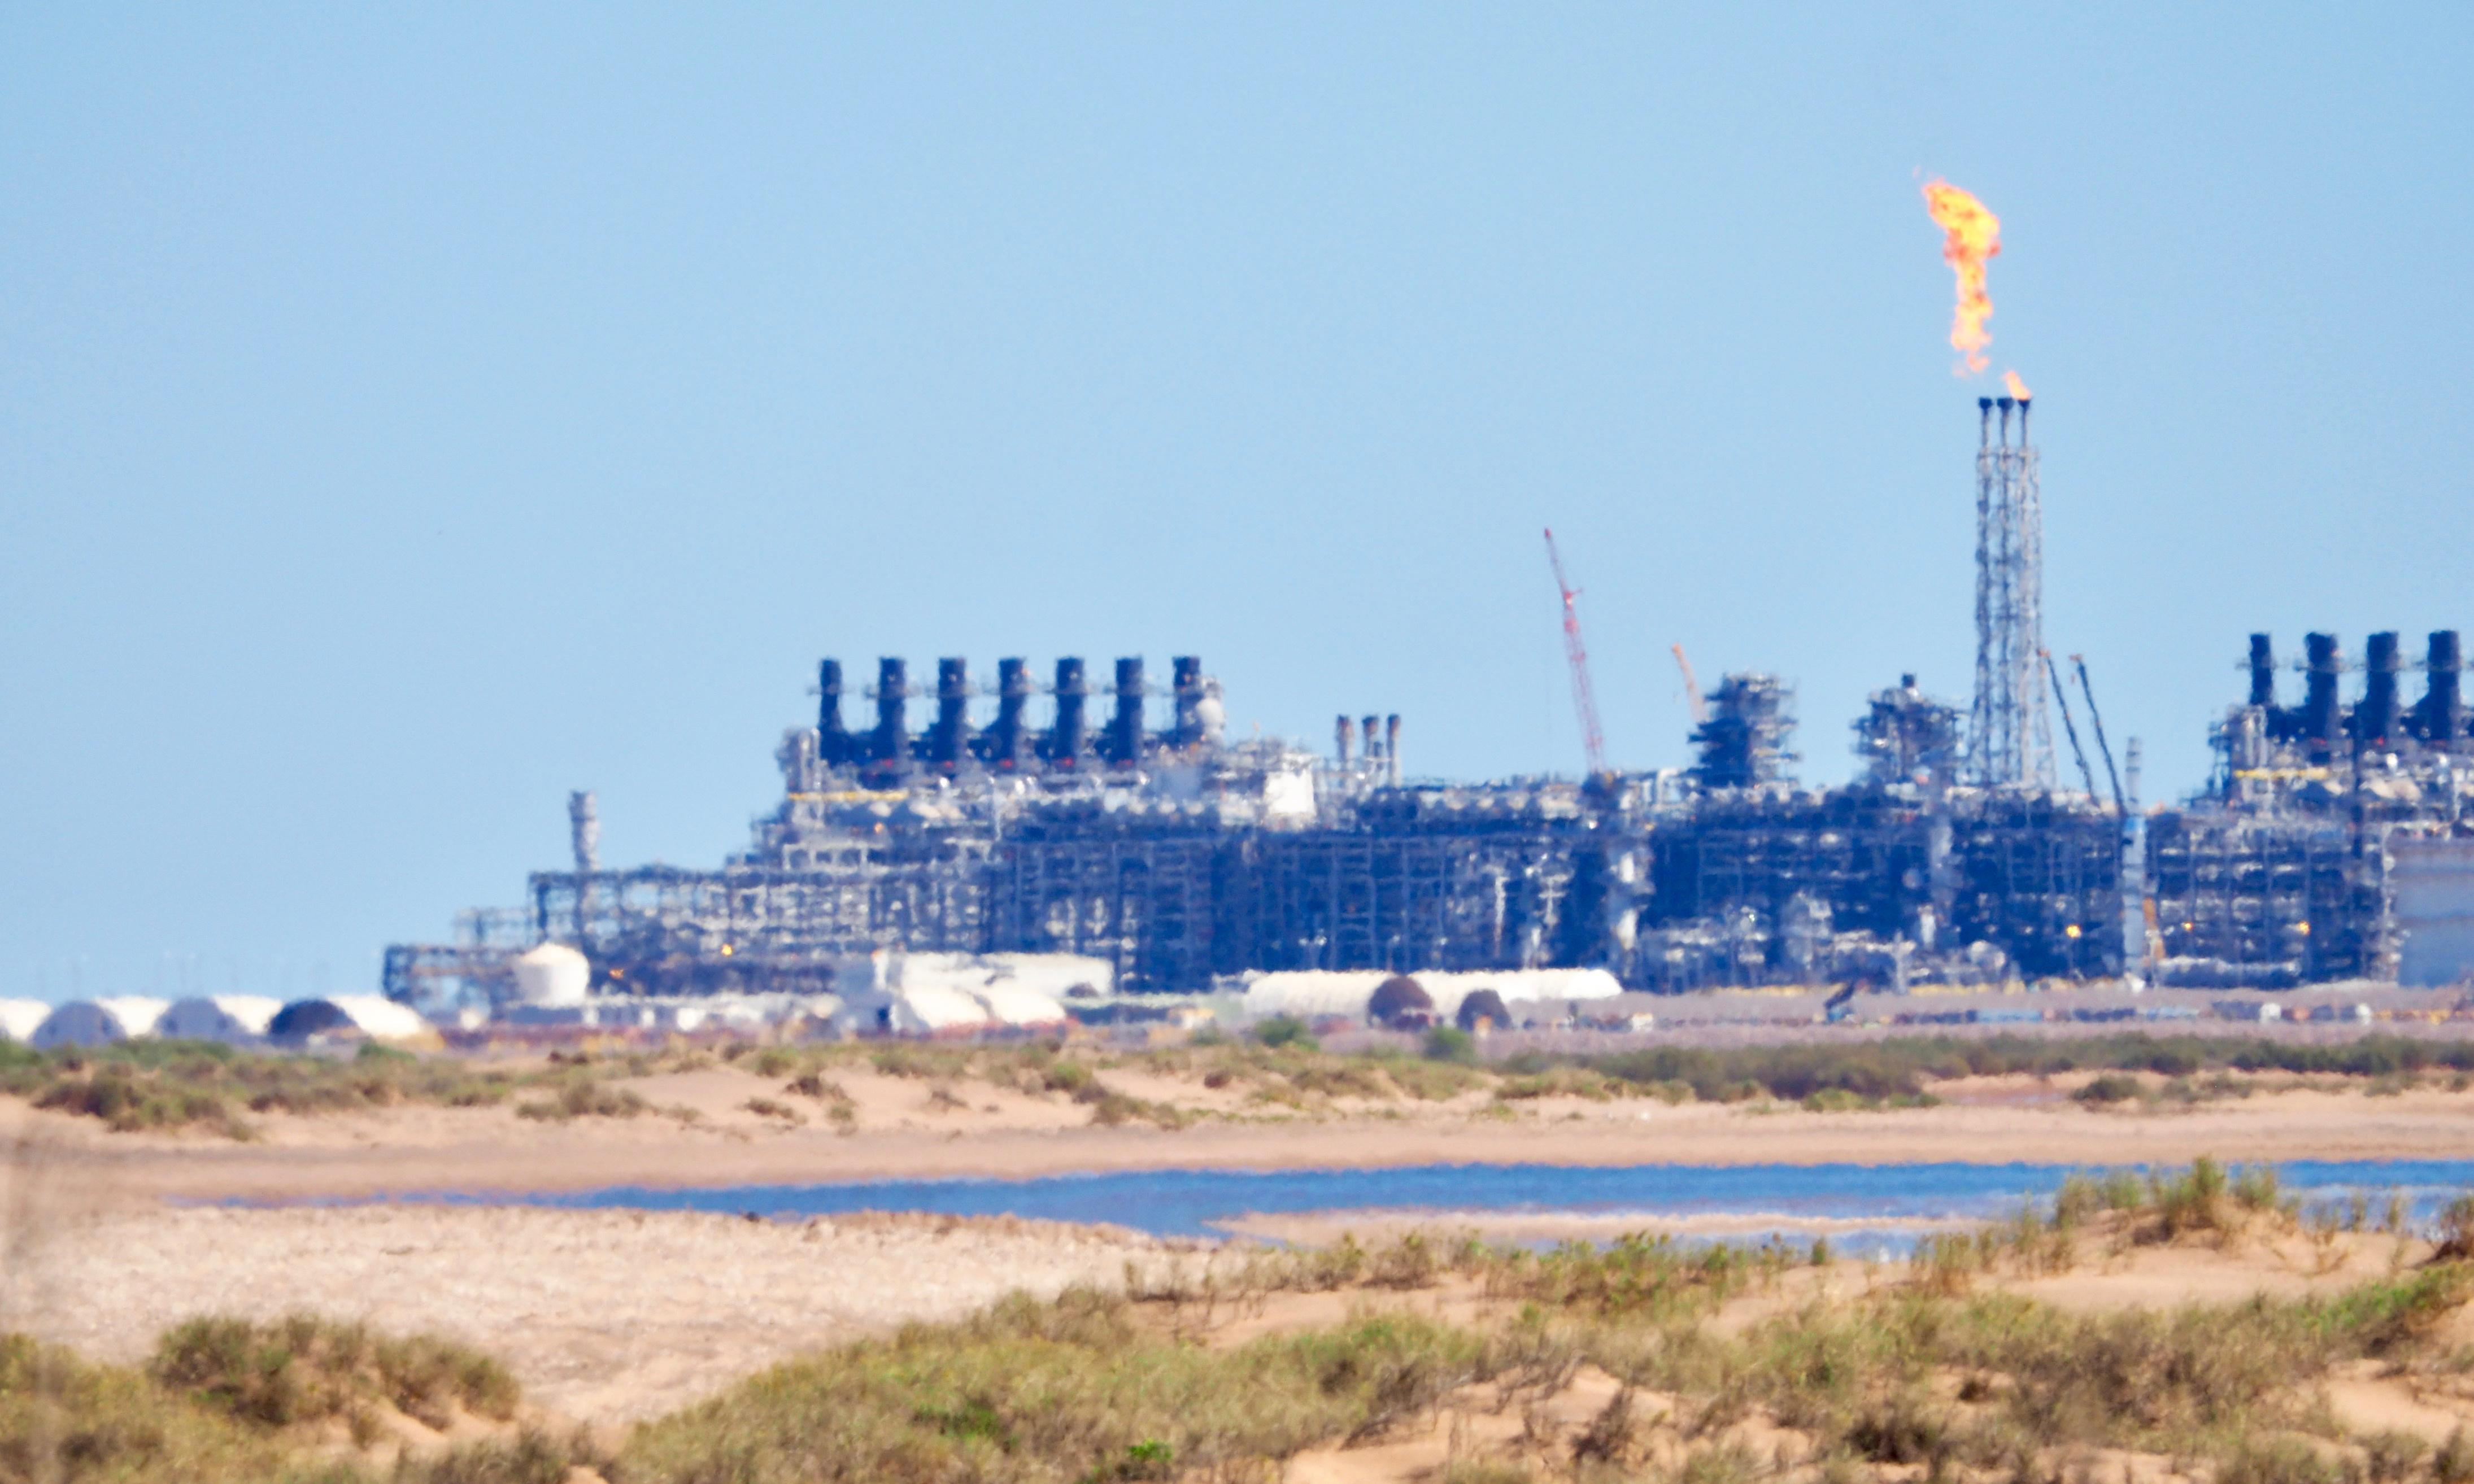 WA's rejection of carbon-neutral guidelines leaves LNG emissions booming